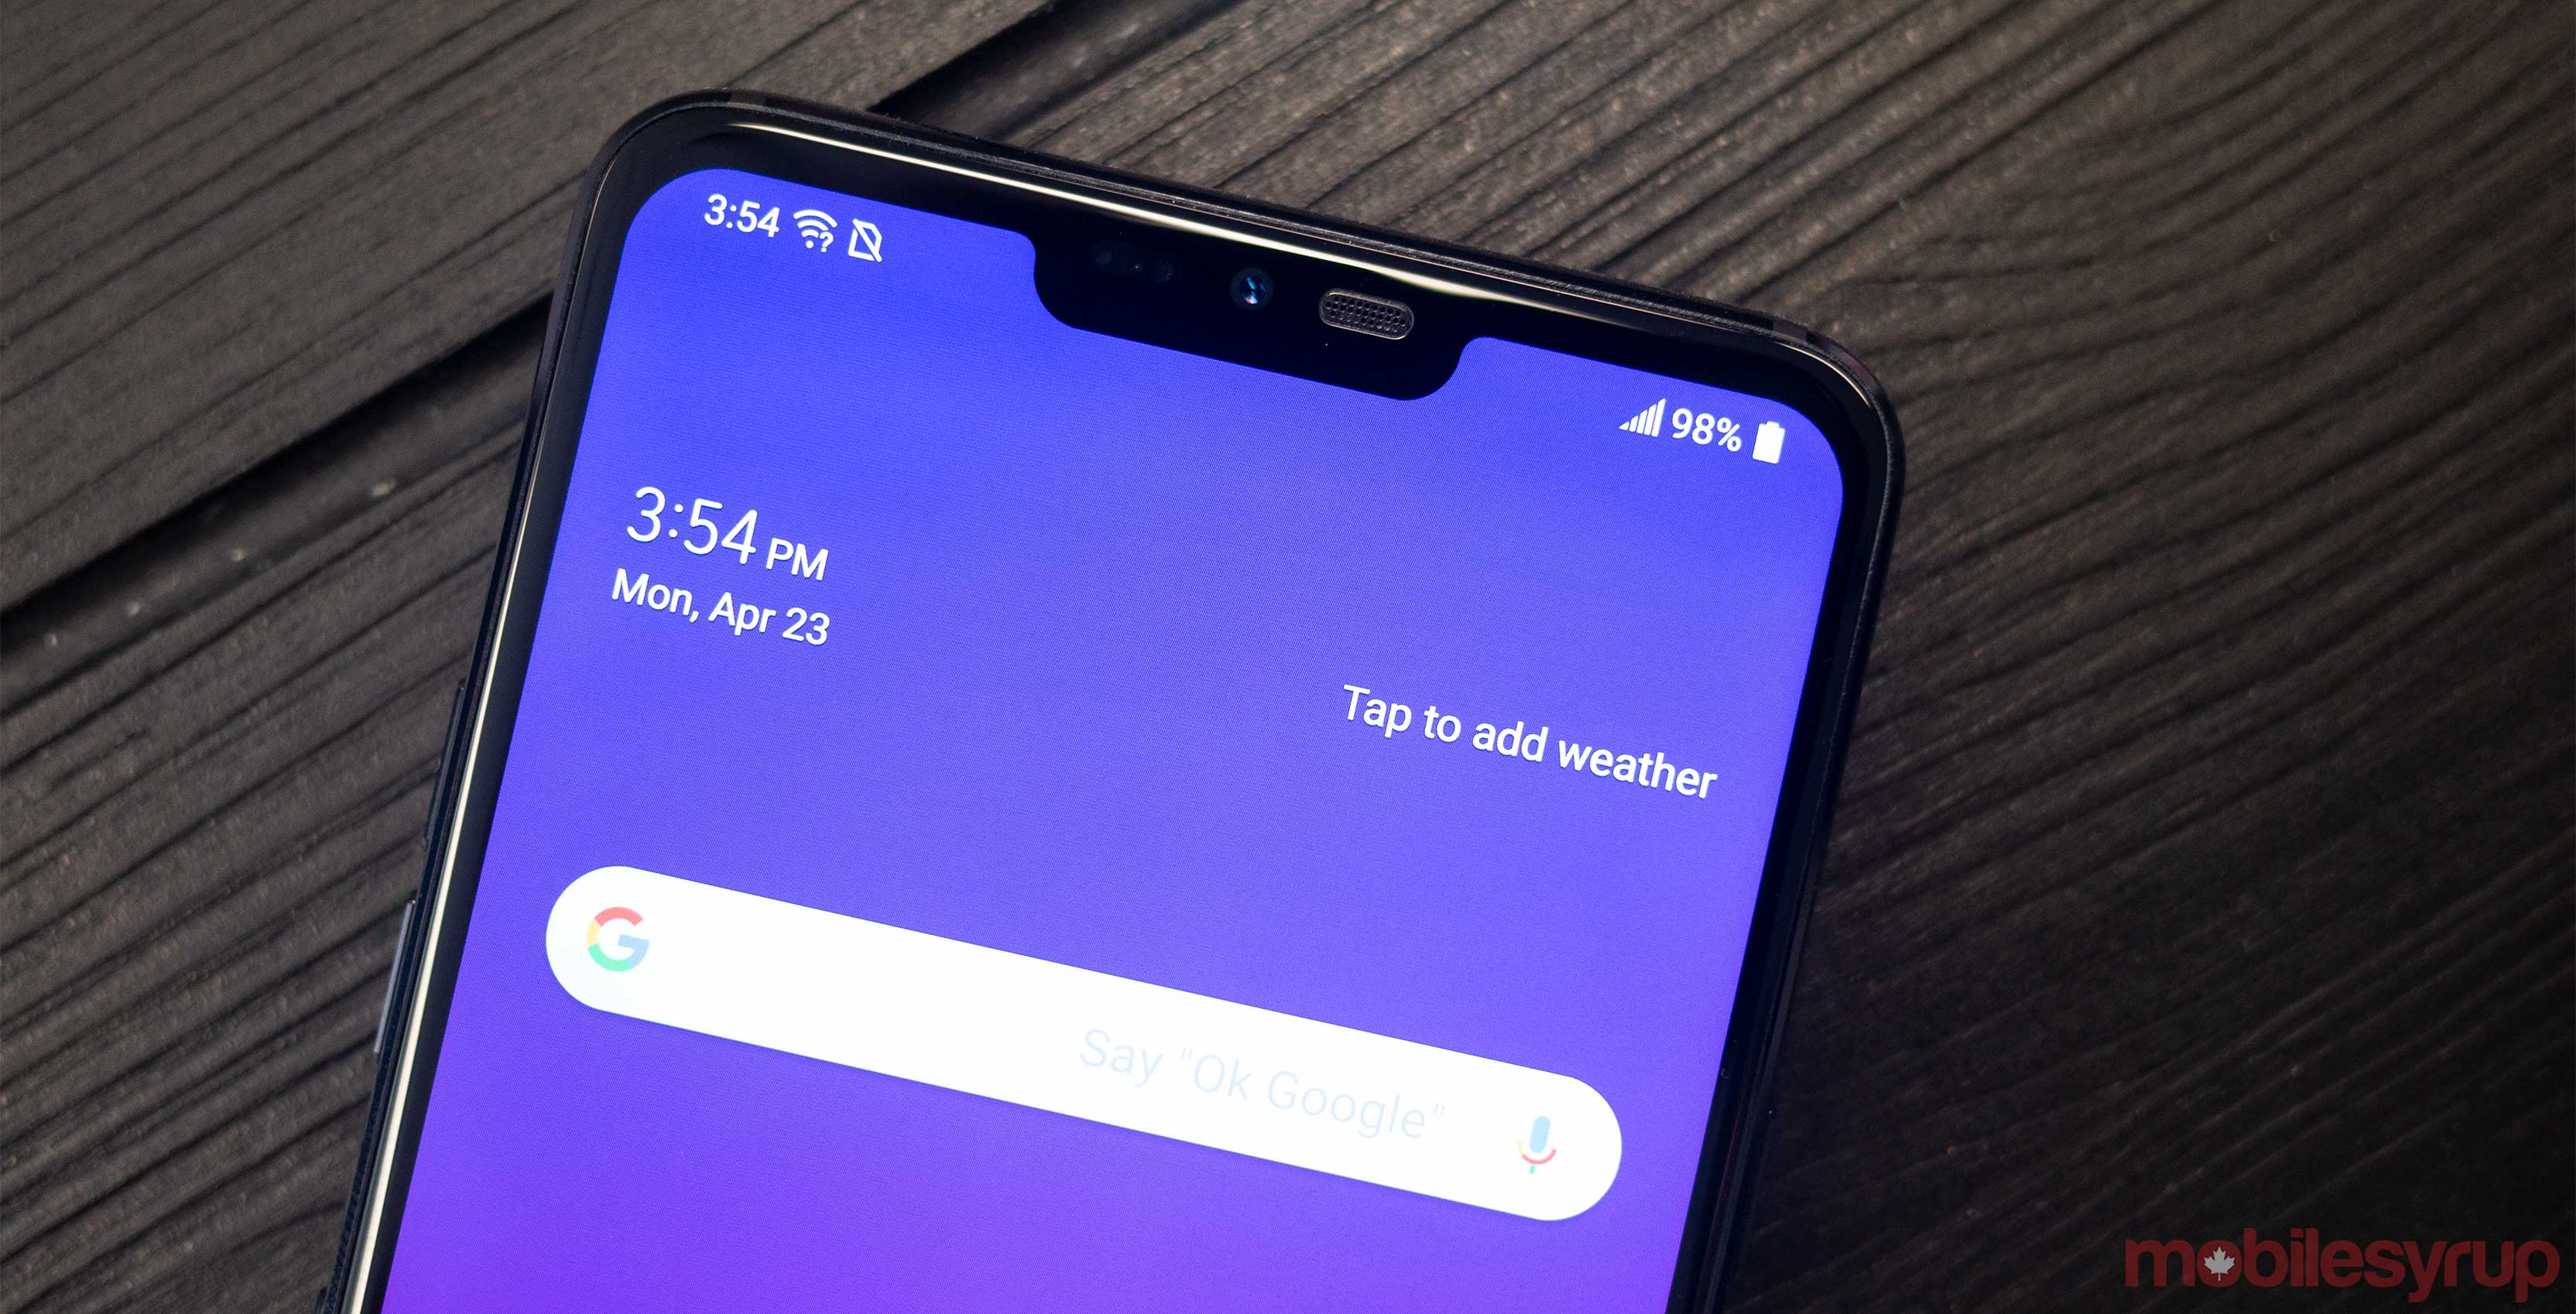 LG G7 ThinQ Canadian pricing and availability